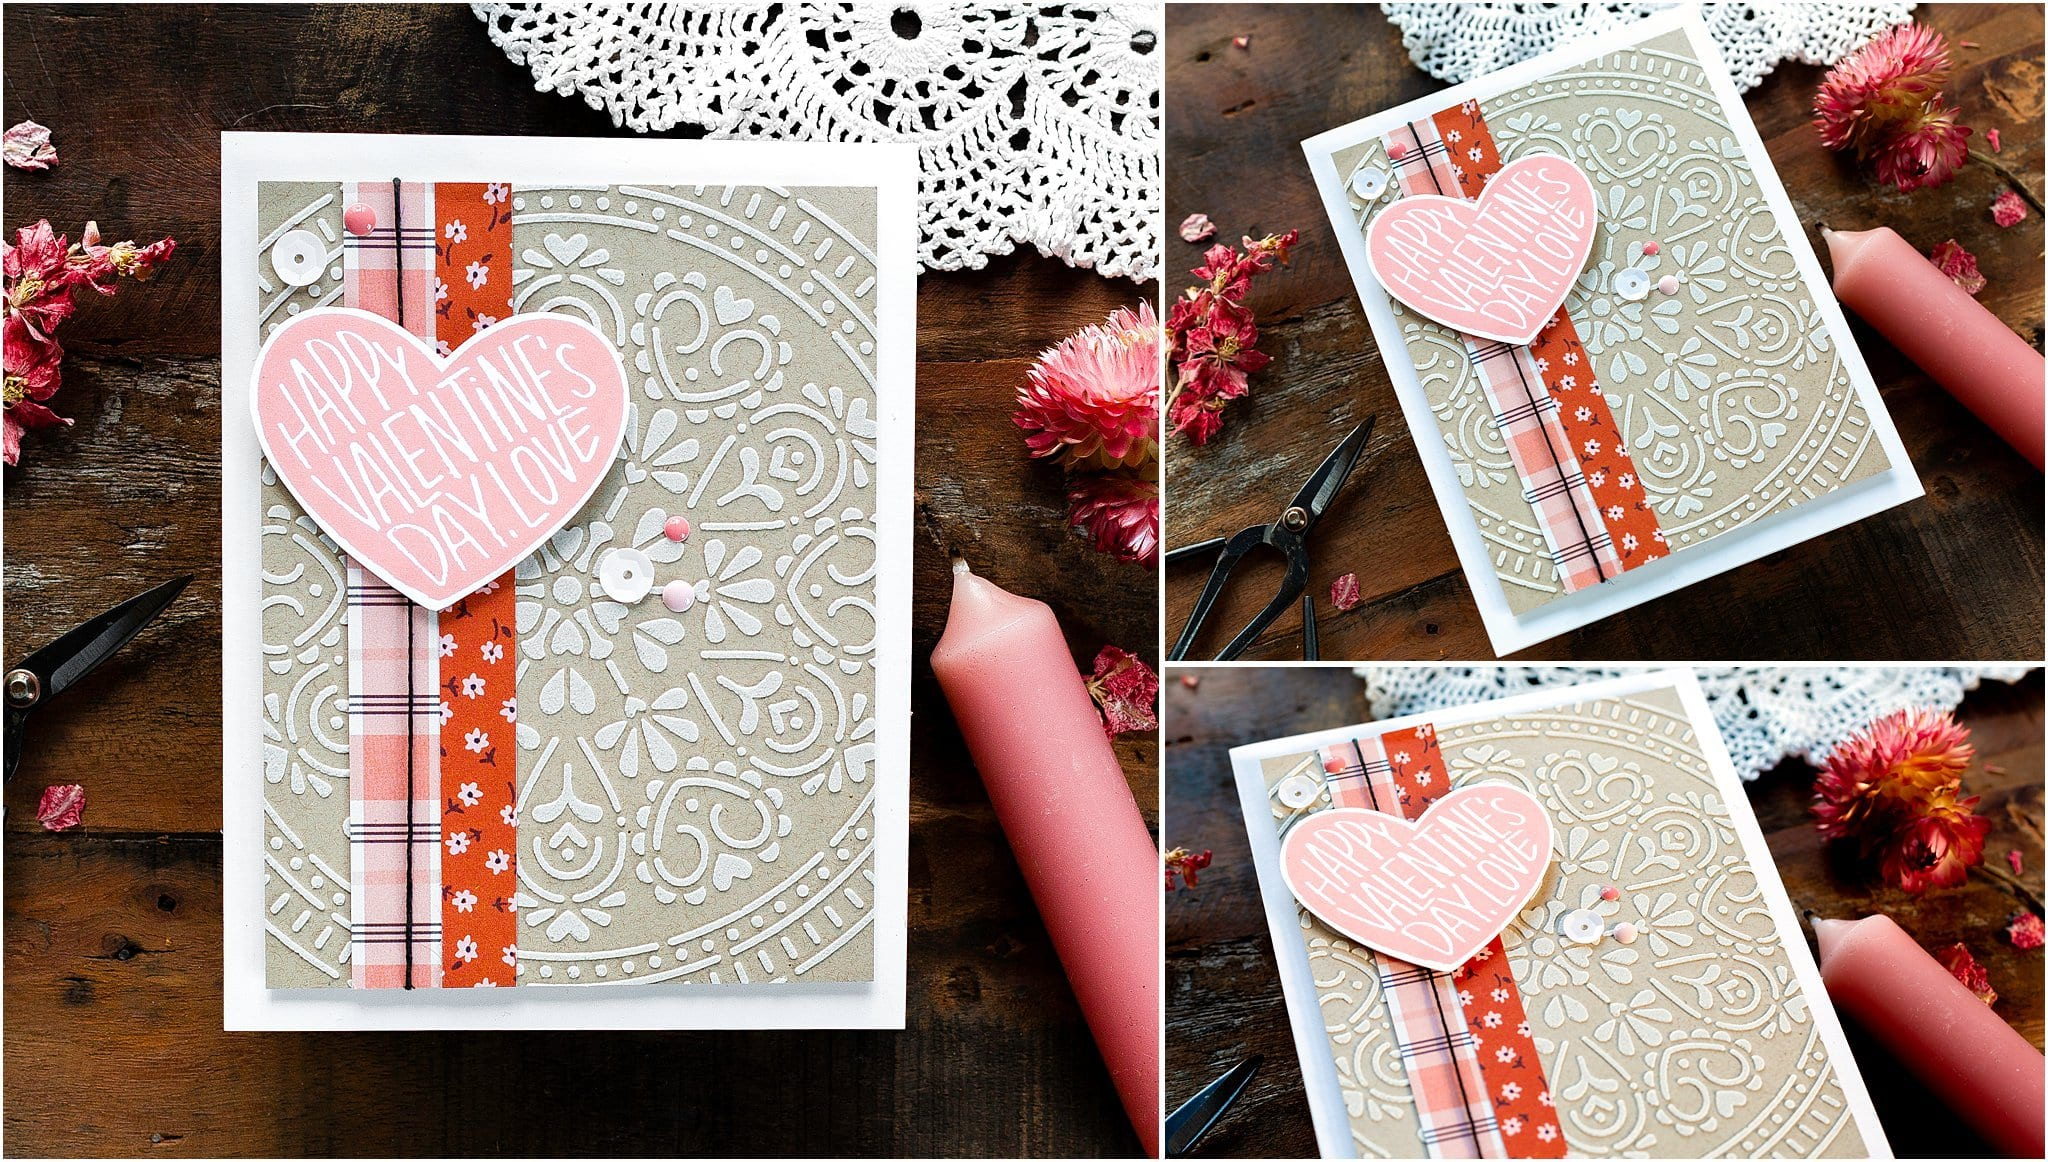 Video tutorial - quick and easy handmade Valentine's card! Design by Debby Hughes using supplies from Simon Says Stamp #handmadecards #cardmaking #cardmakingideas #cardmakingtechniques  #cardmakingtutorials #handmadecardideas #simonsaysstamp